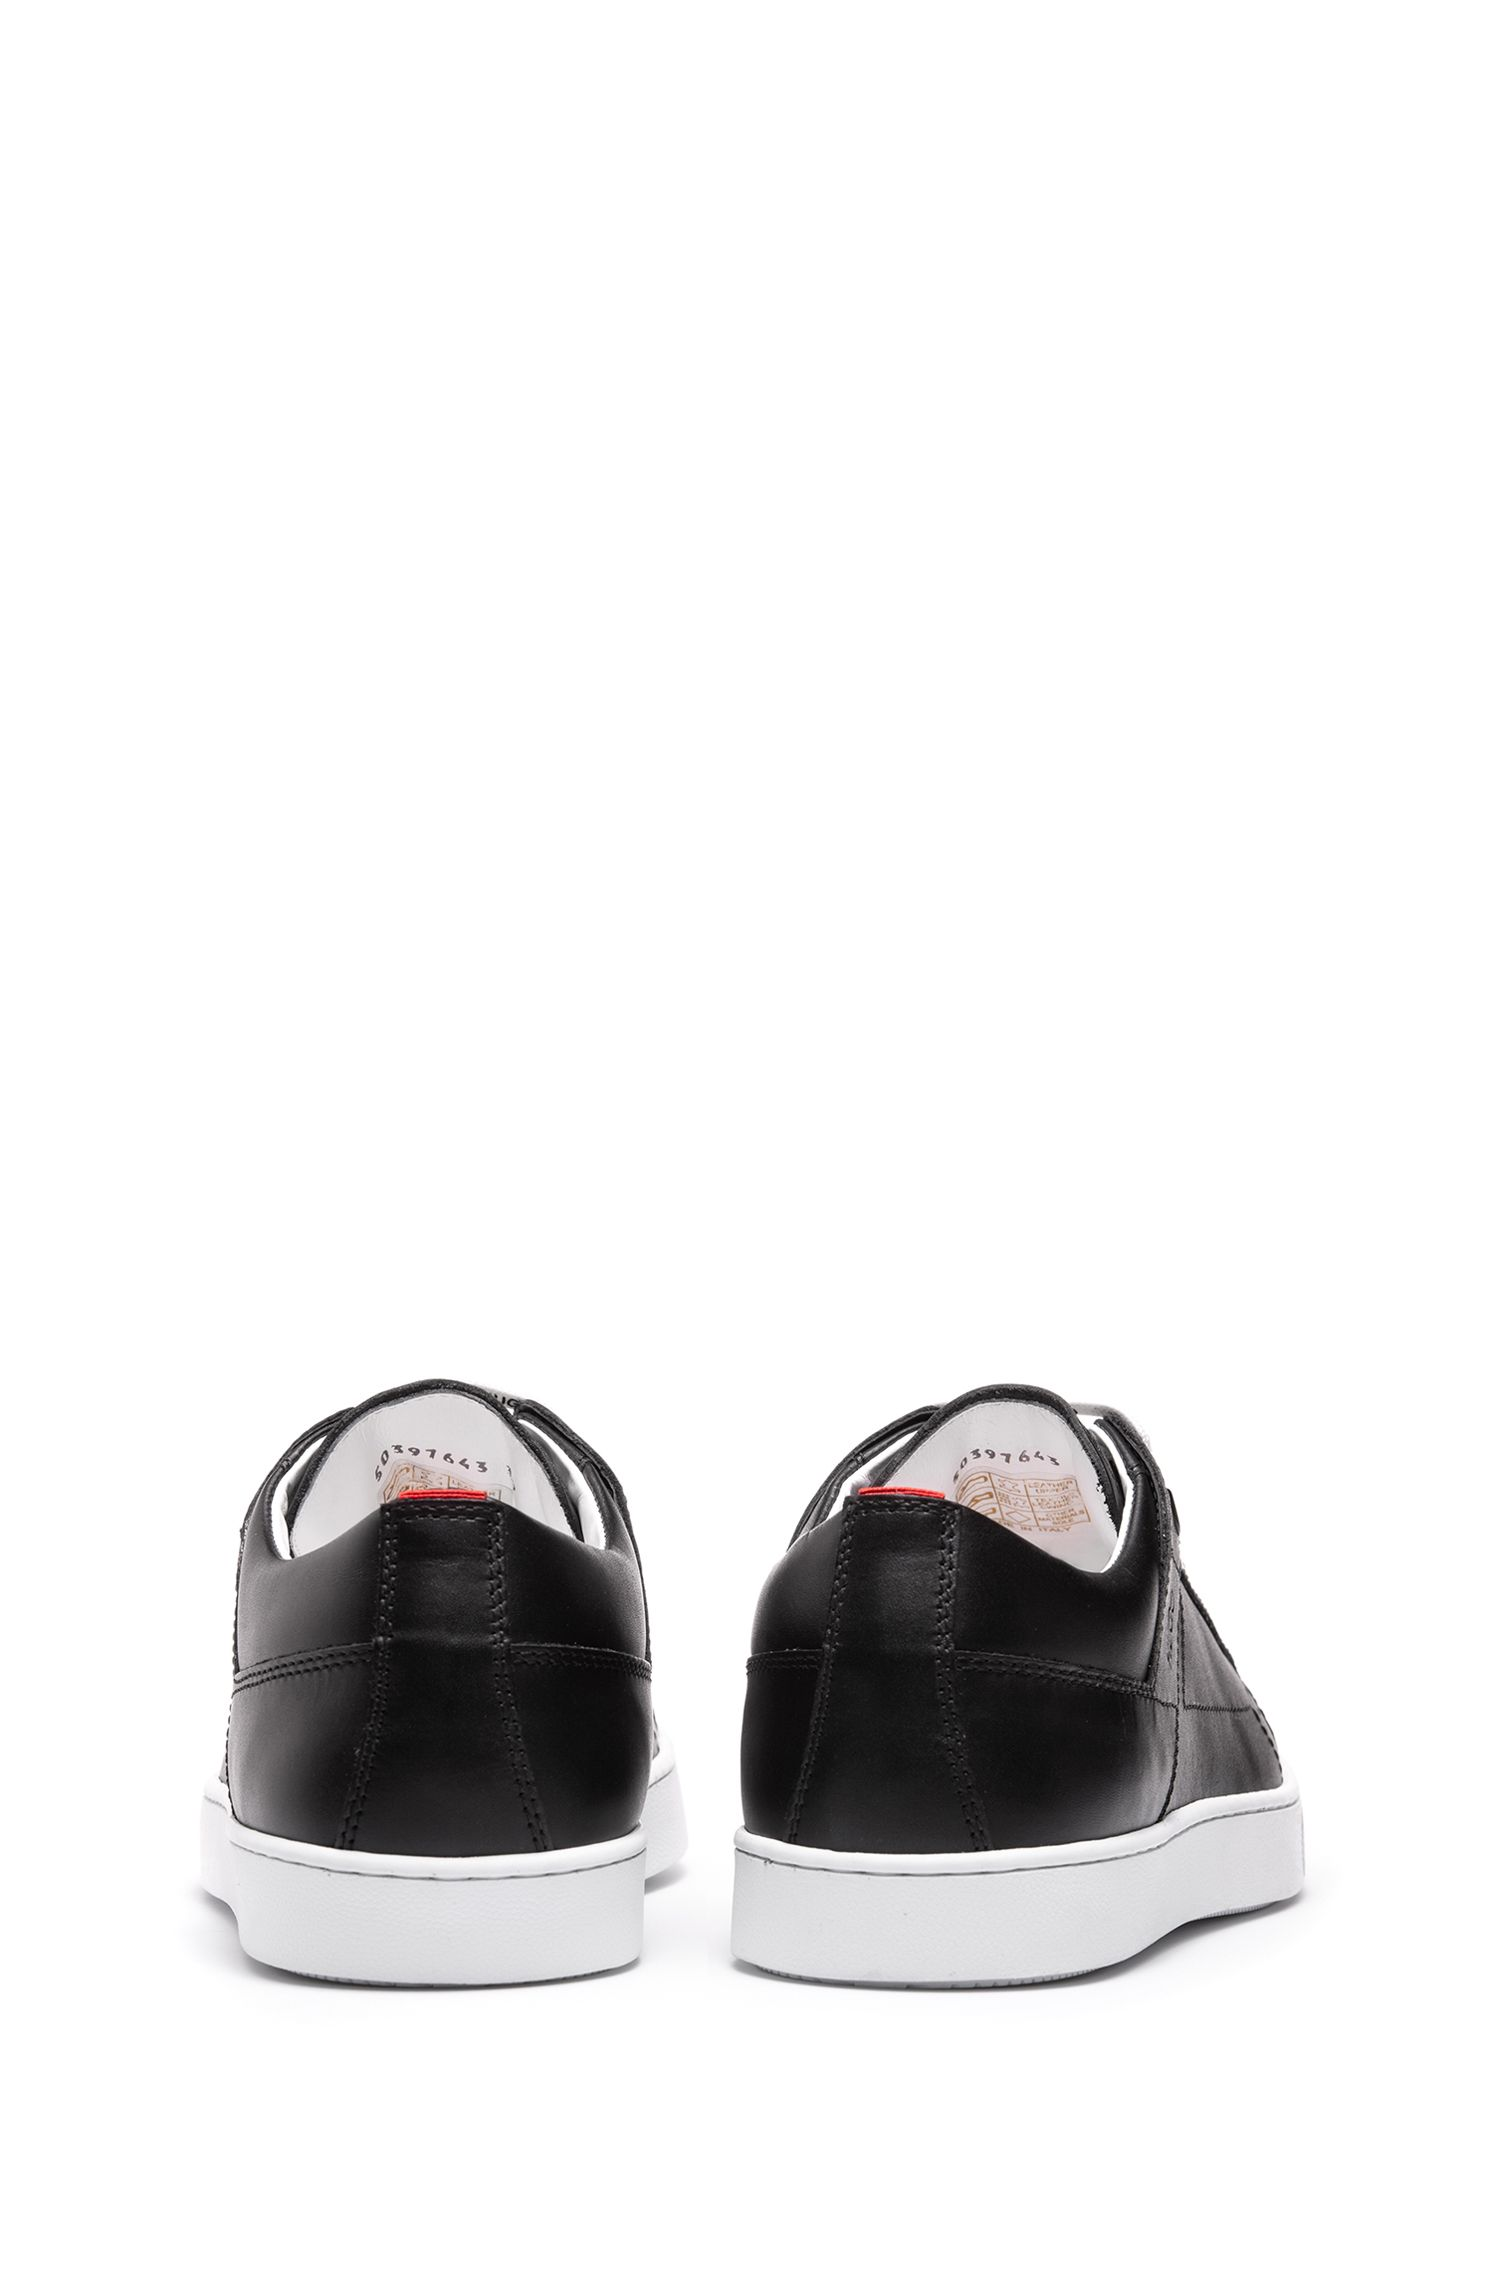 Low-top sneakers in Italian leather with statement logo, Black